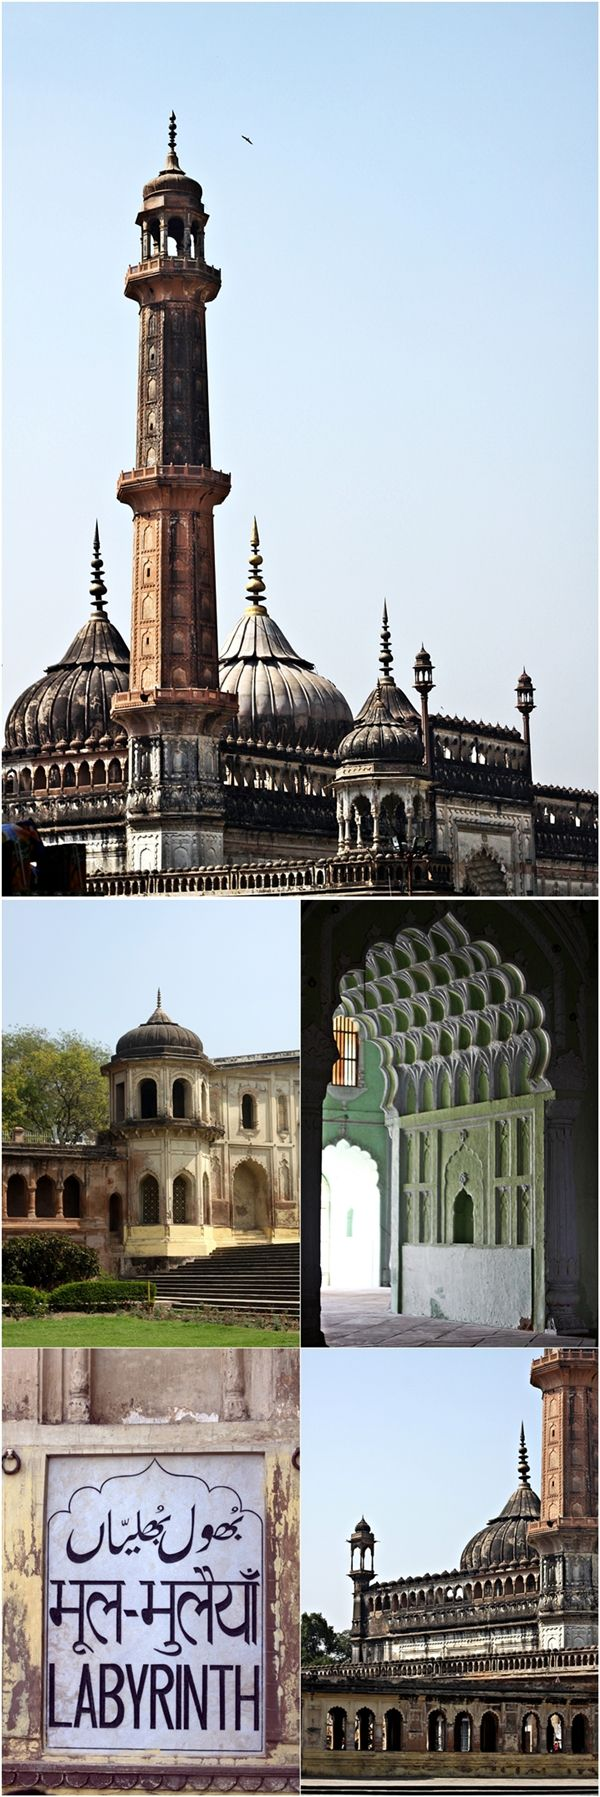 The city of the Nawabs, Lucknow, Uttar Pradesh, India